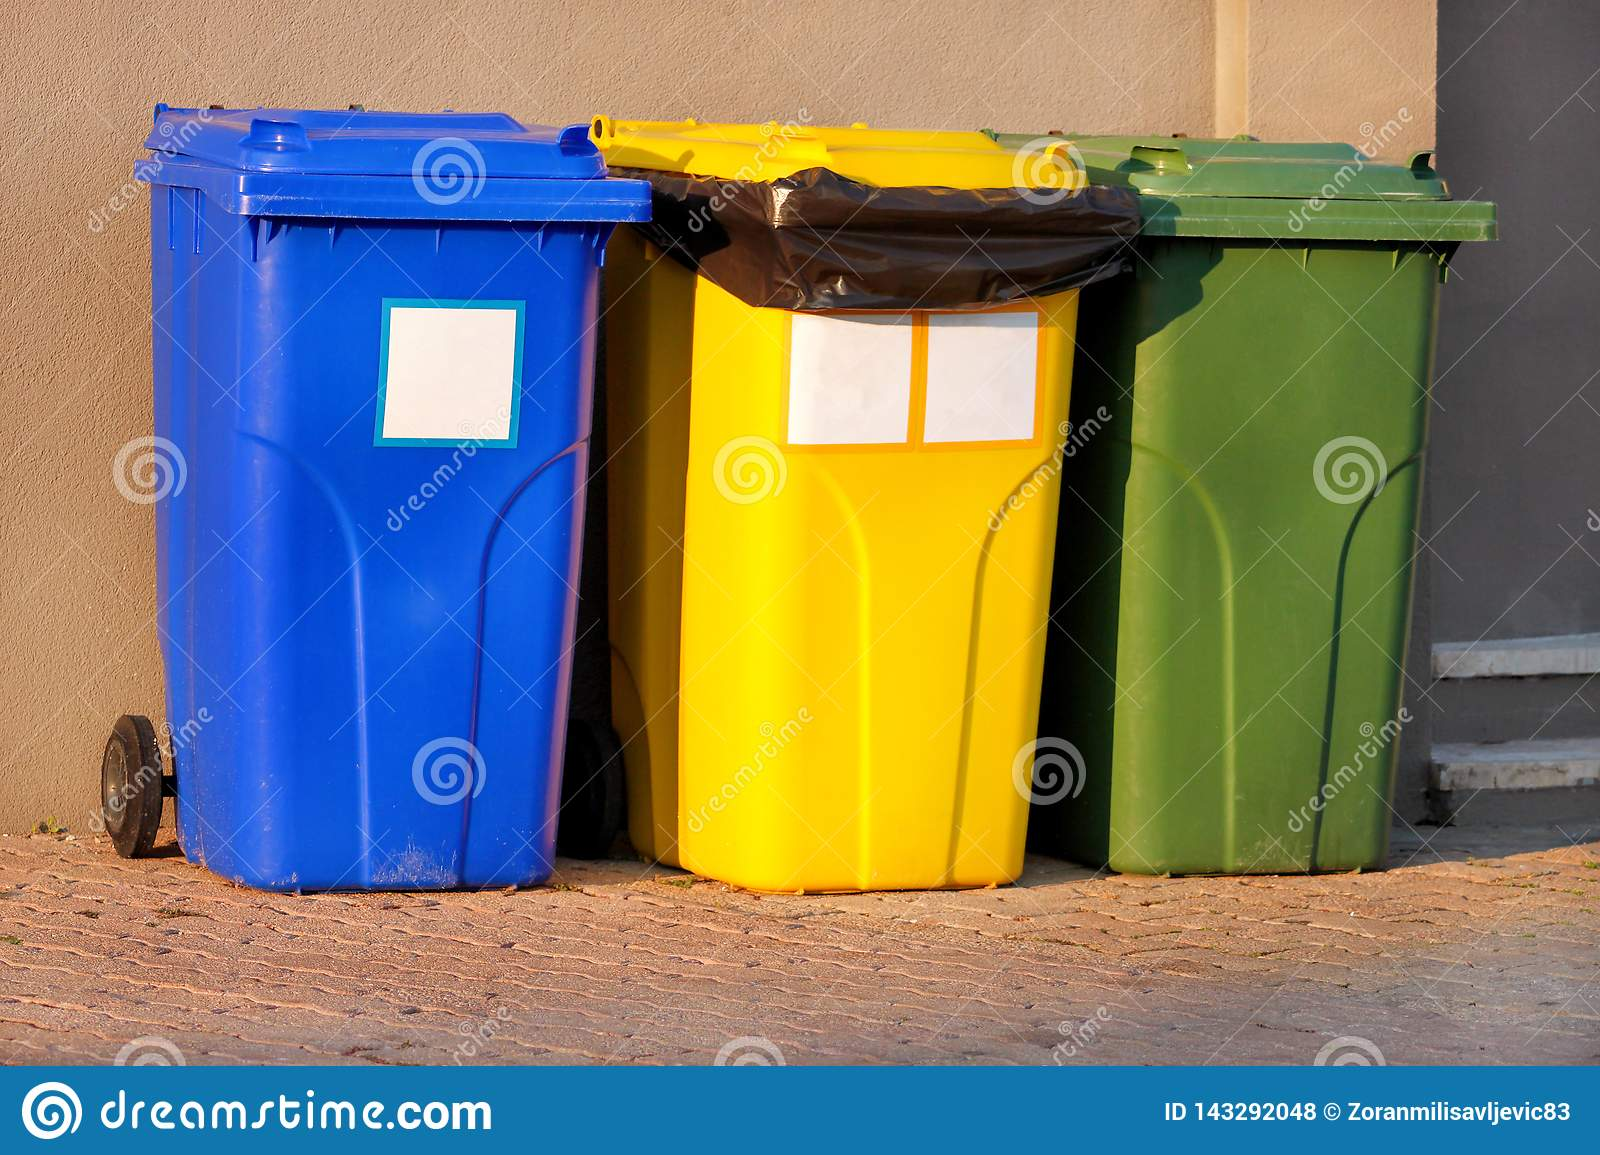 Trash can, garbage bin, recycling bin in tourist complex resort, waiting to be picked up by garbage truck. Blue, yellow and green.